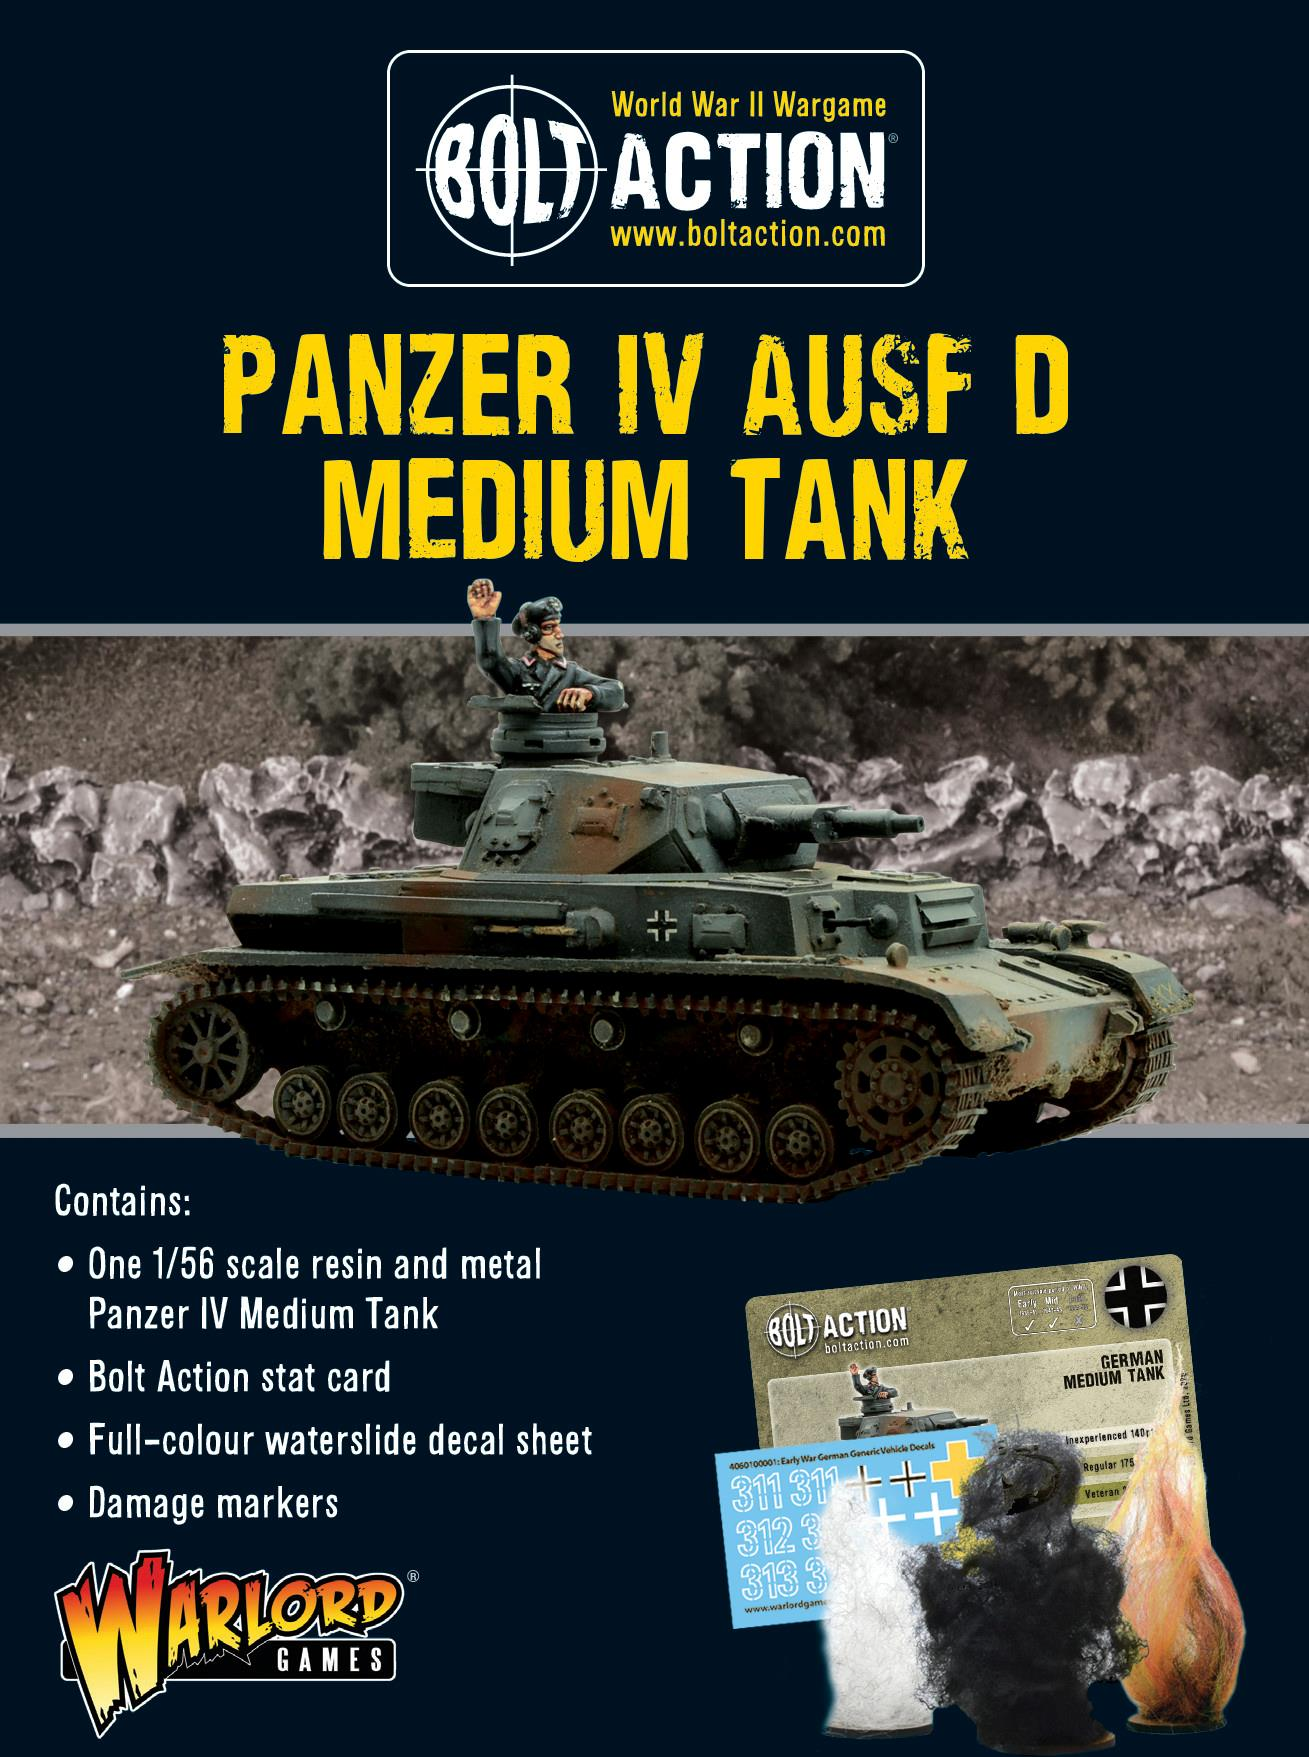 Panzer IV Ausf D - 25% Off Black Friday